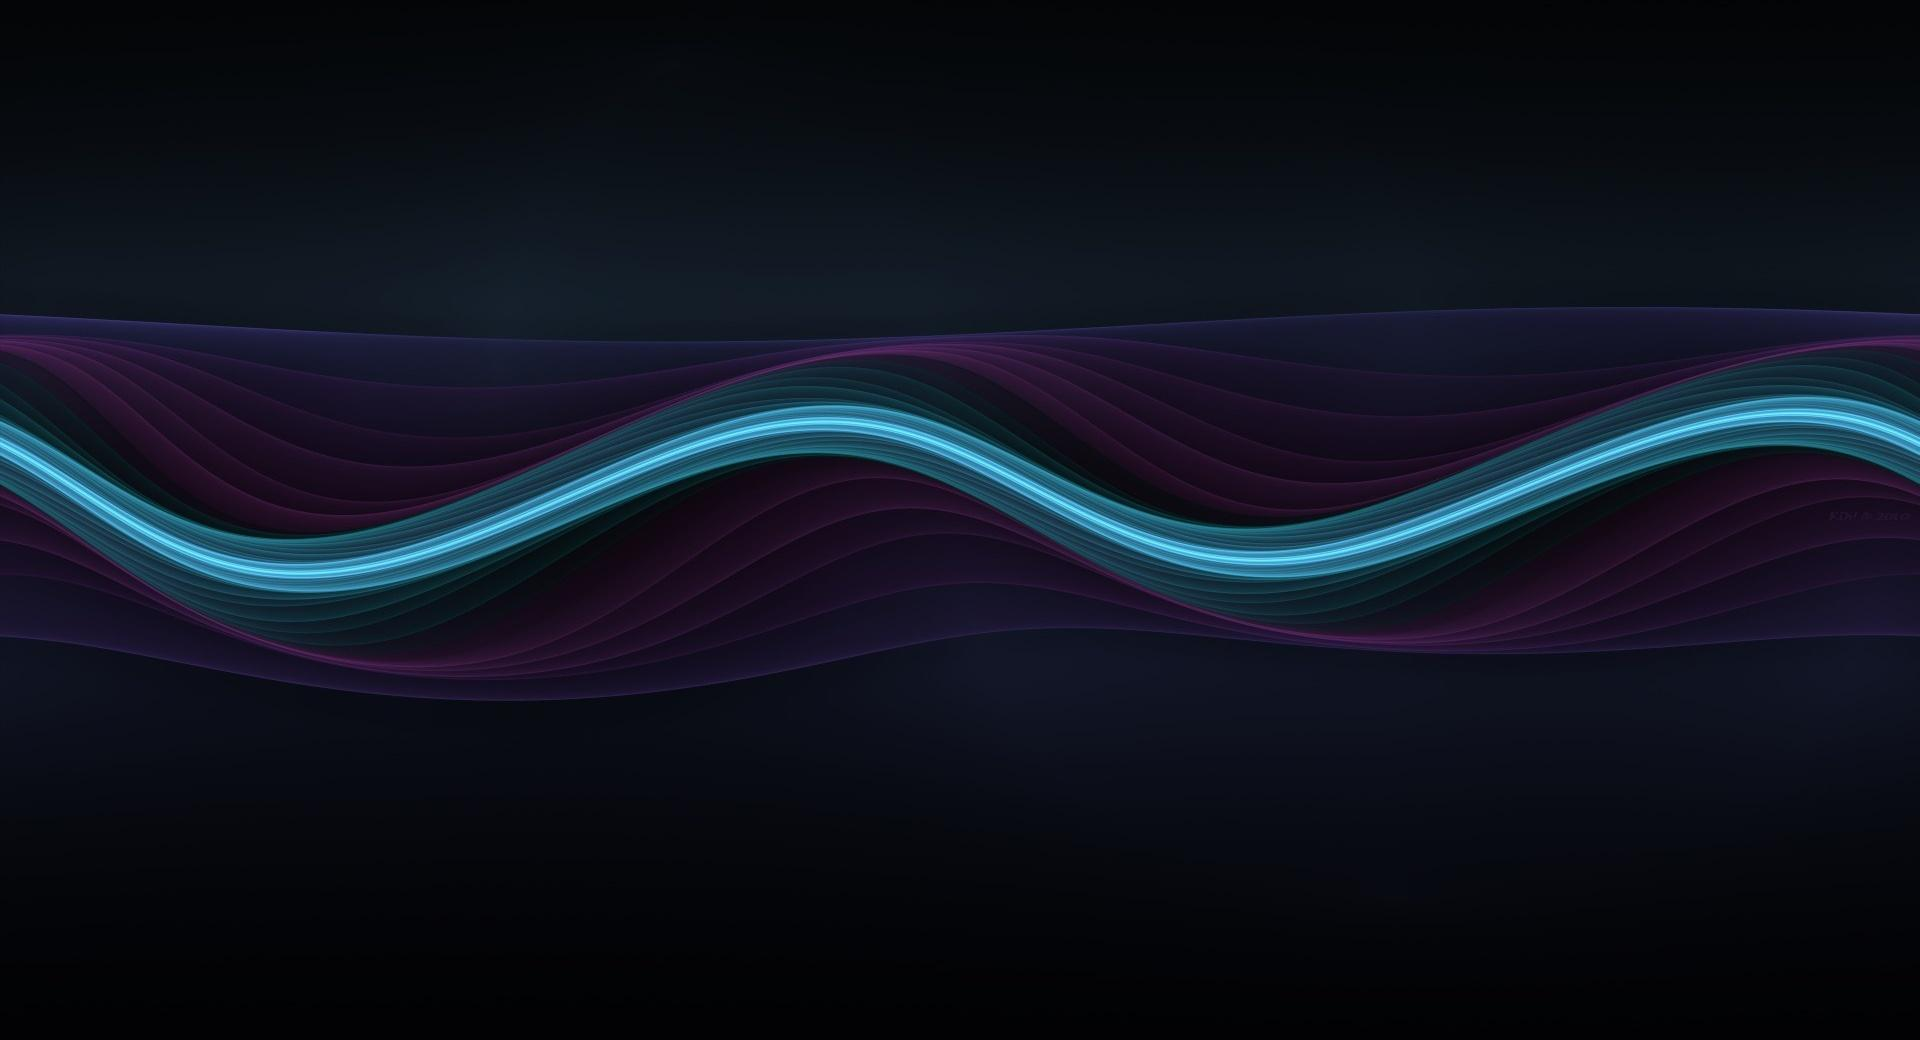 Abstract Wave wallpapers HD quality